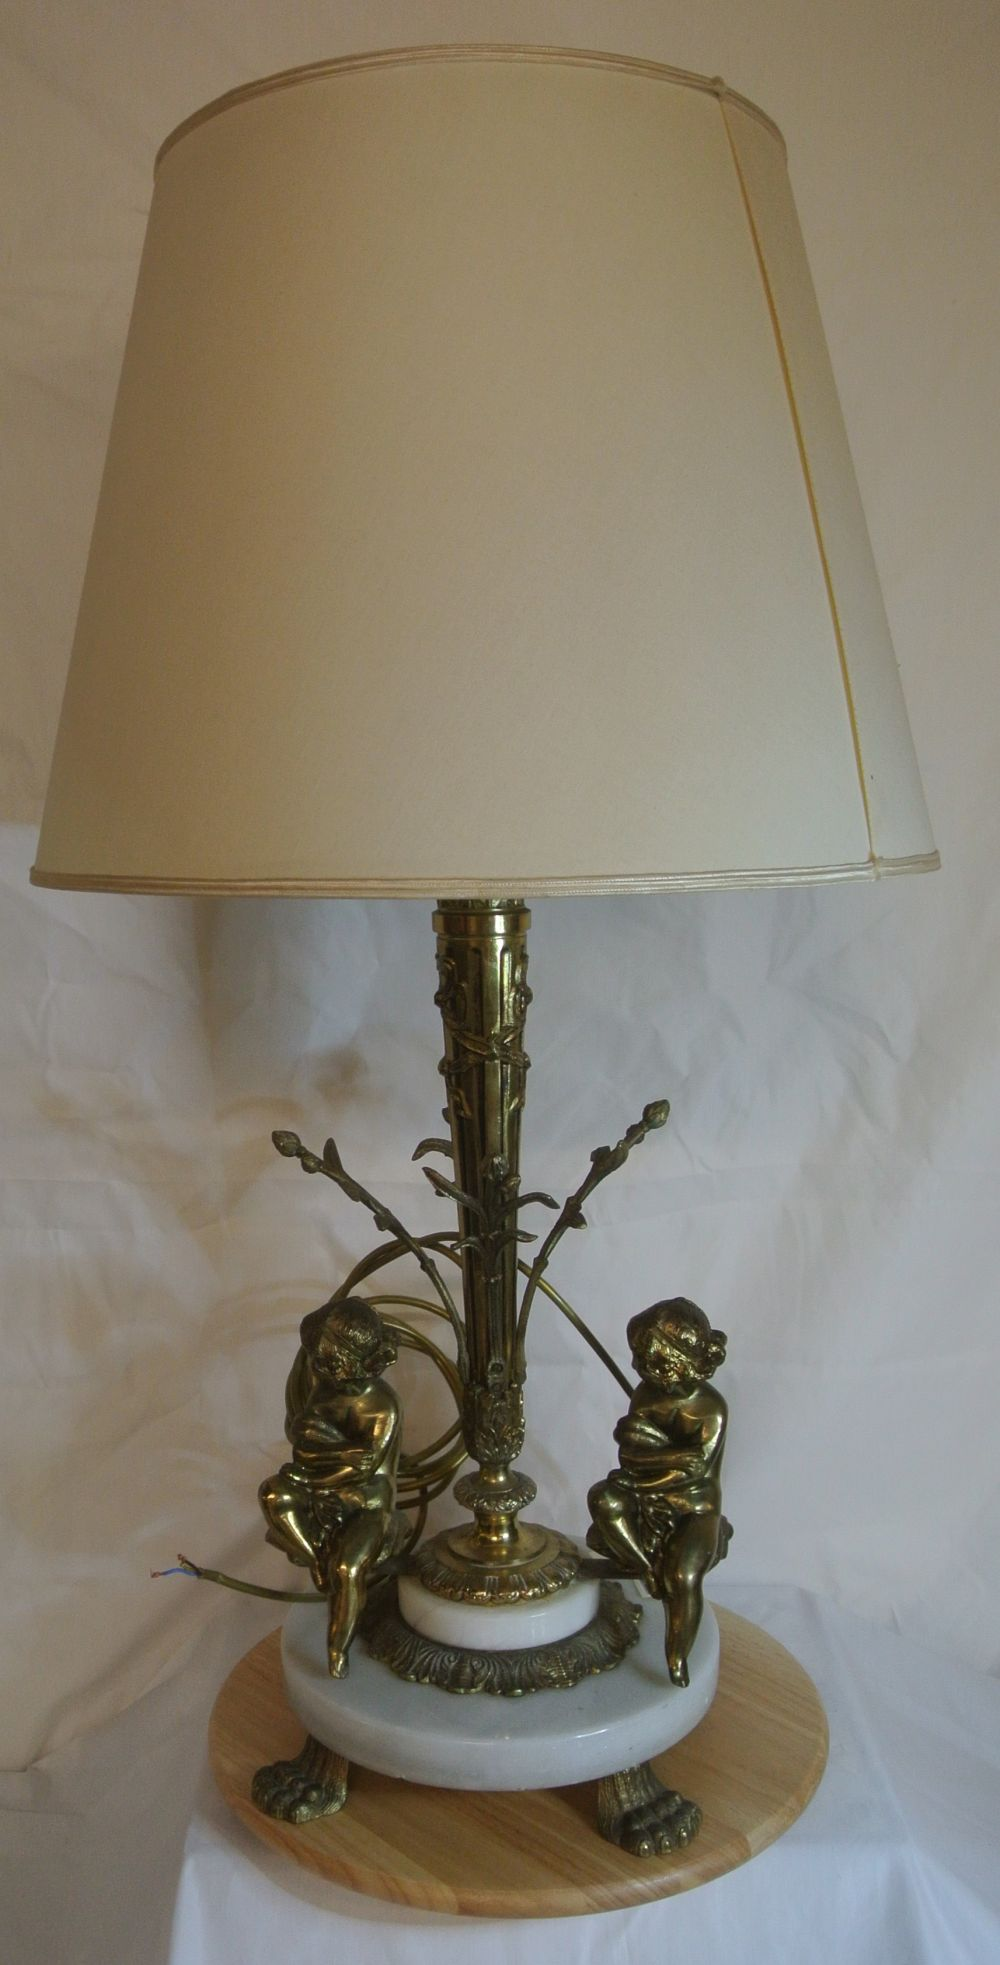 A large ornate gilt table lamp with cherub base & cream shade.